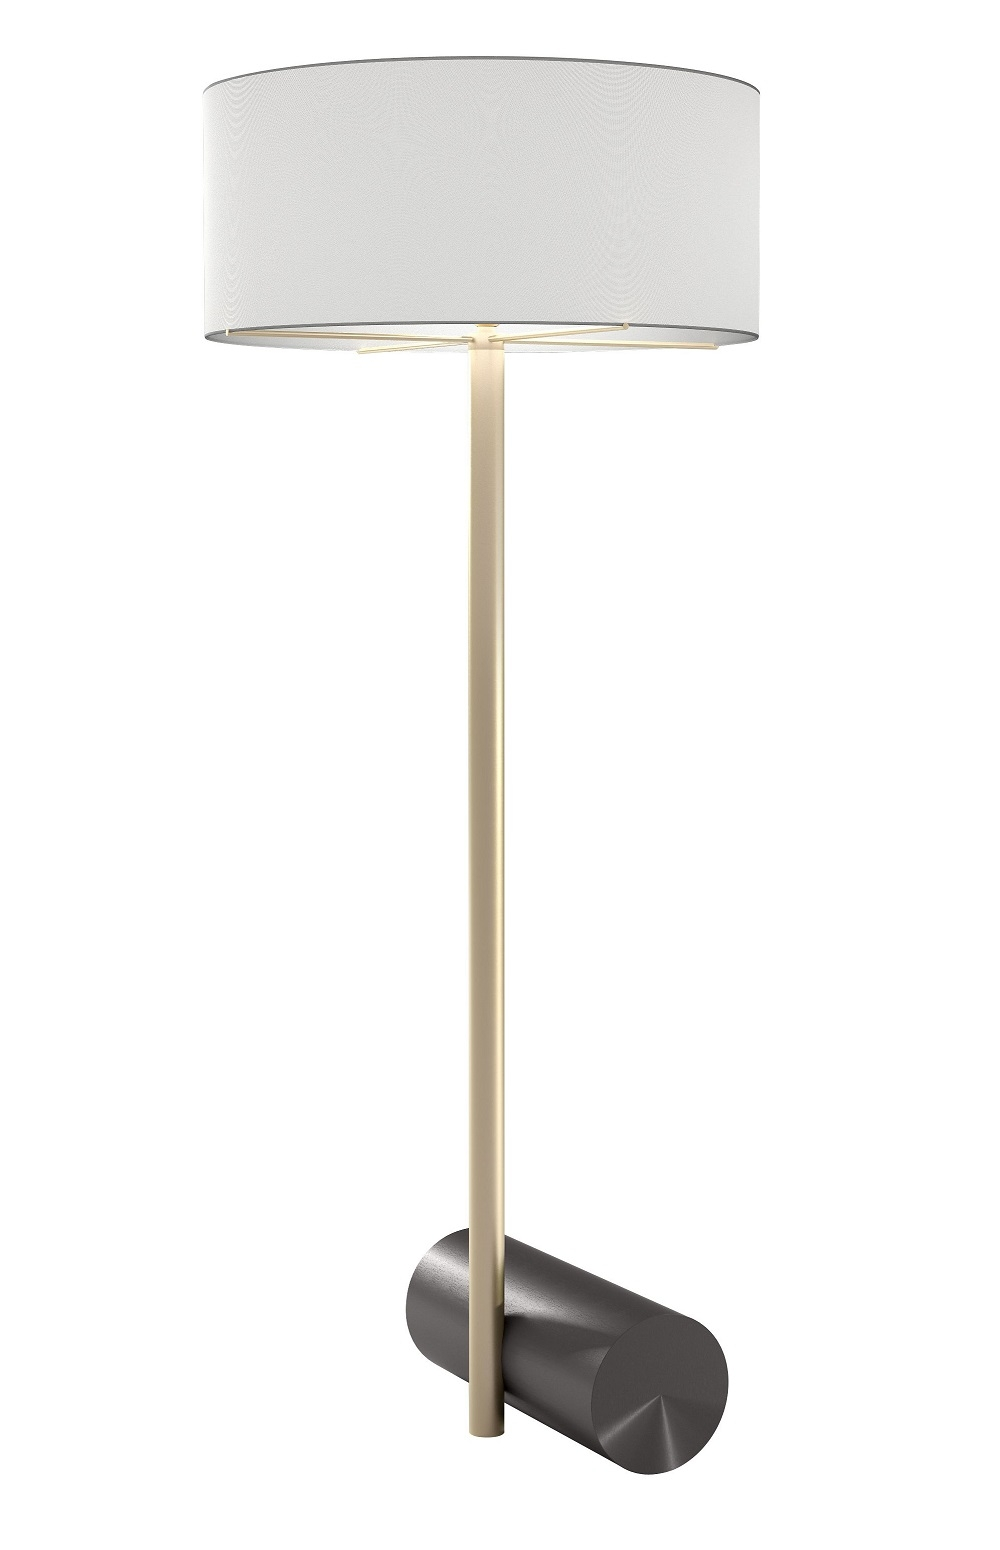 hotte luminaire good hotte luminaire with hotte luminaire good hotte luminaire with hotte. Black Bedroom Furniture Sets. Home Design Ideas